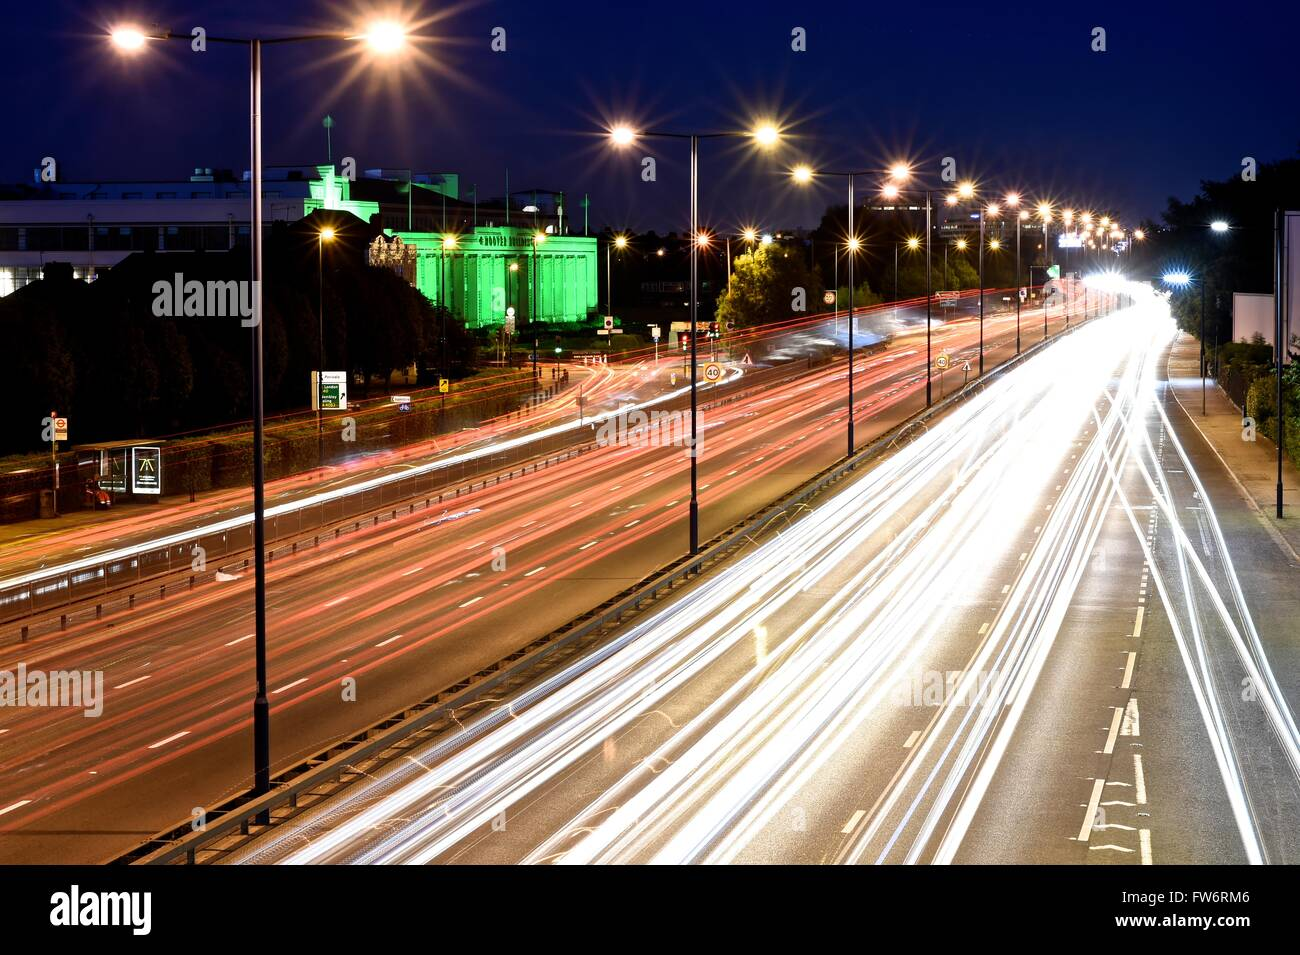 Light trail shot on A40, Hoover building - Stock Image